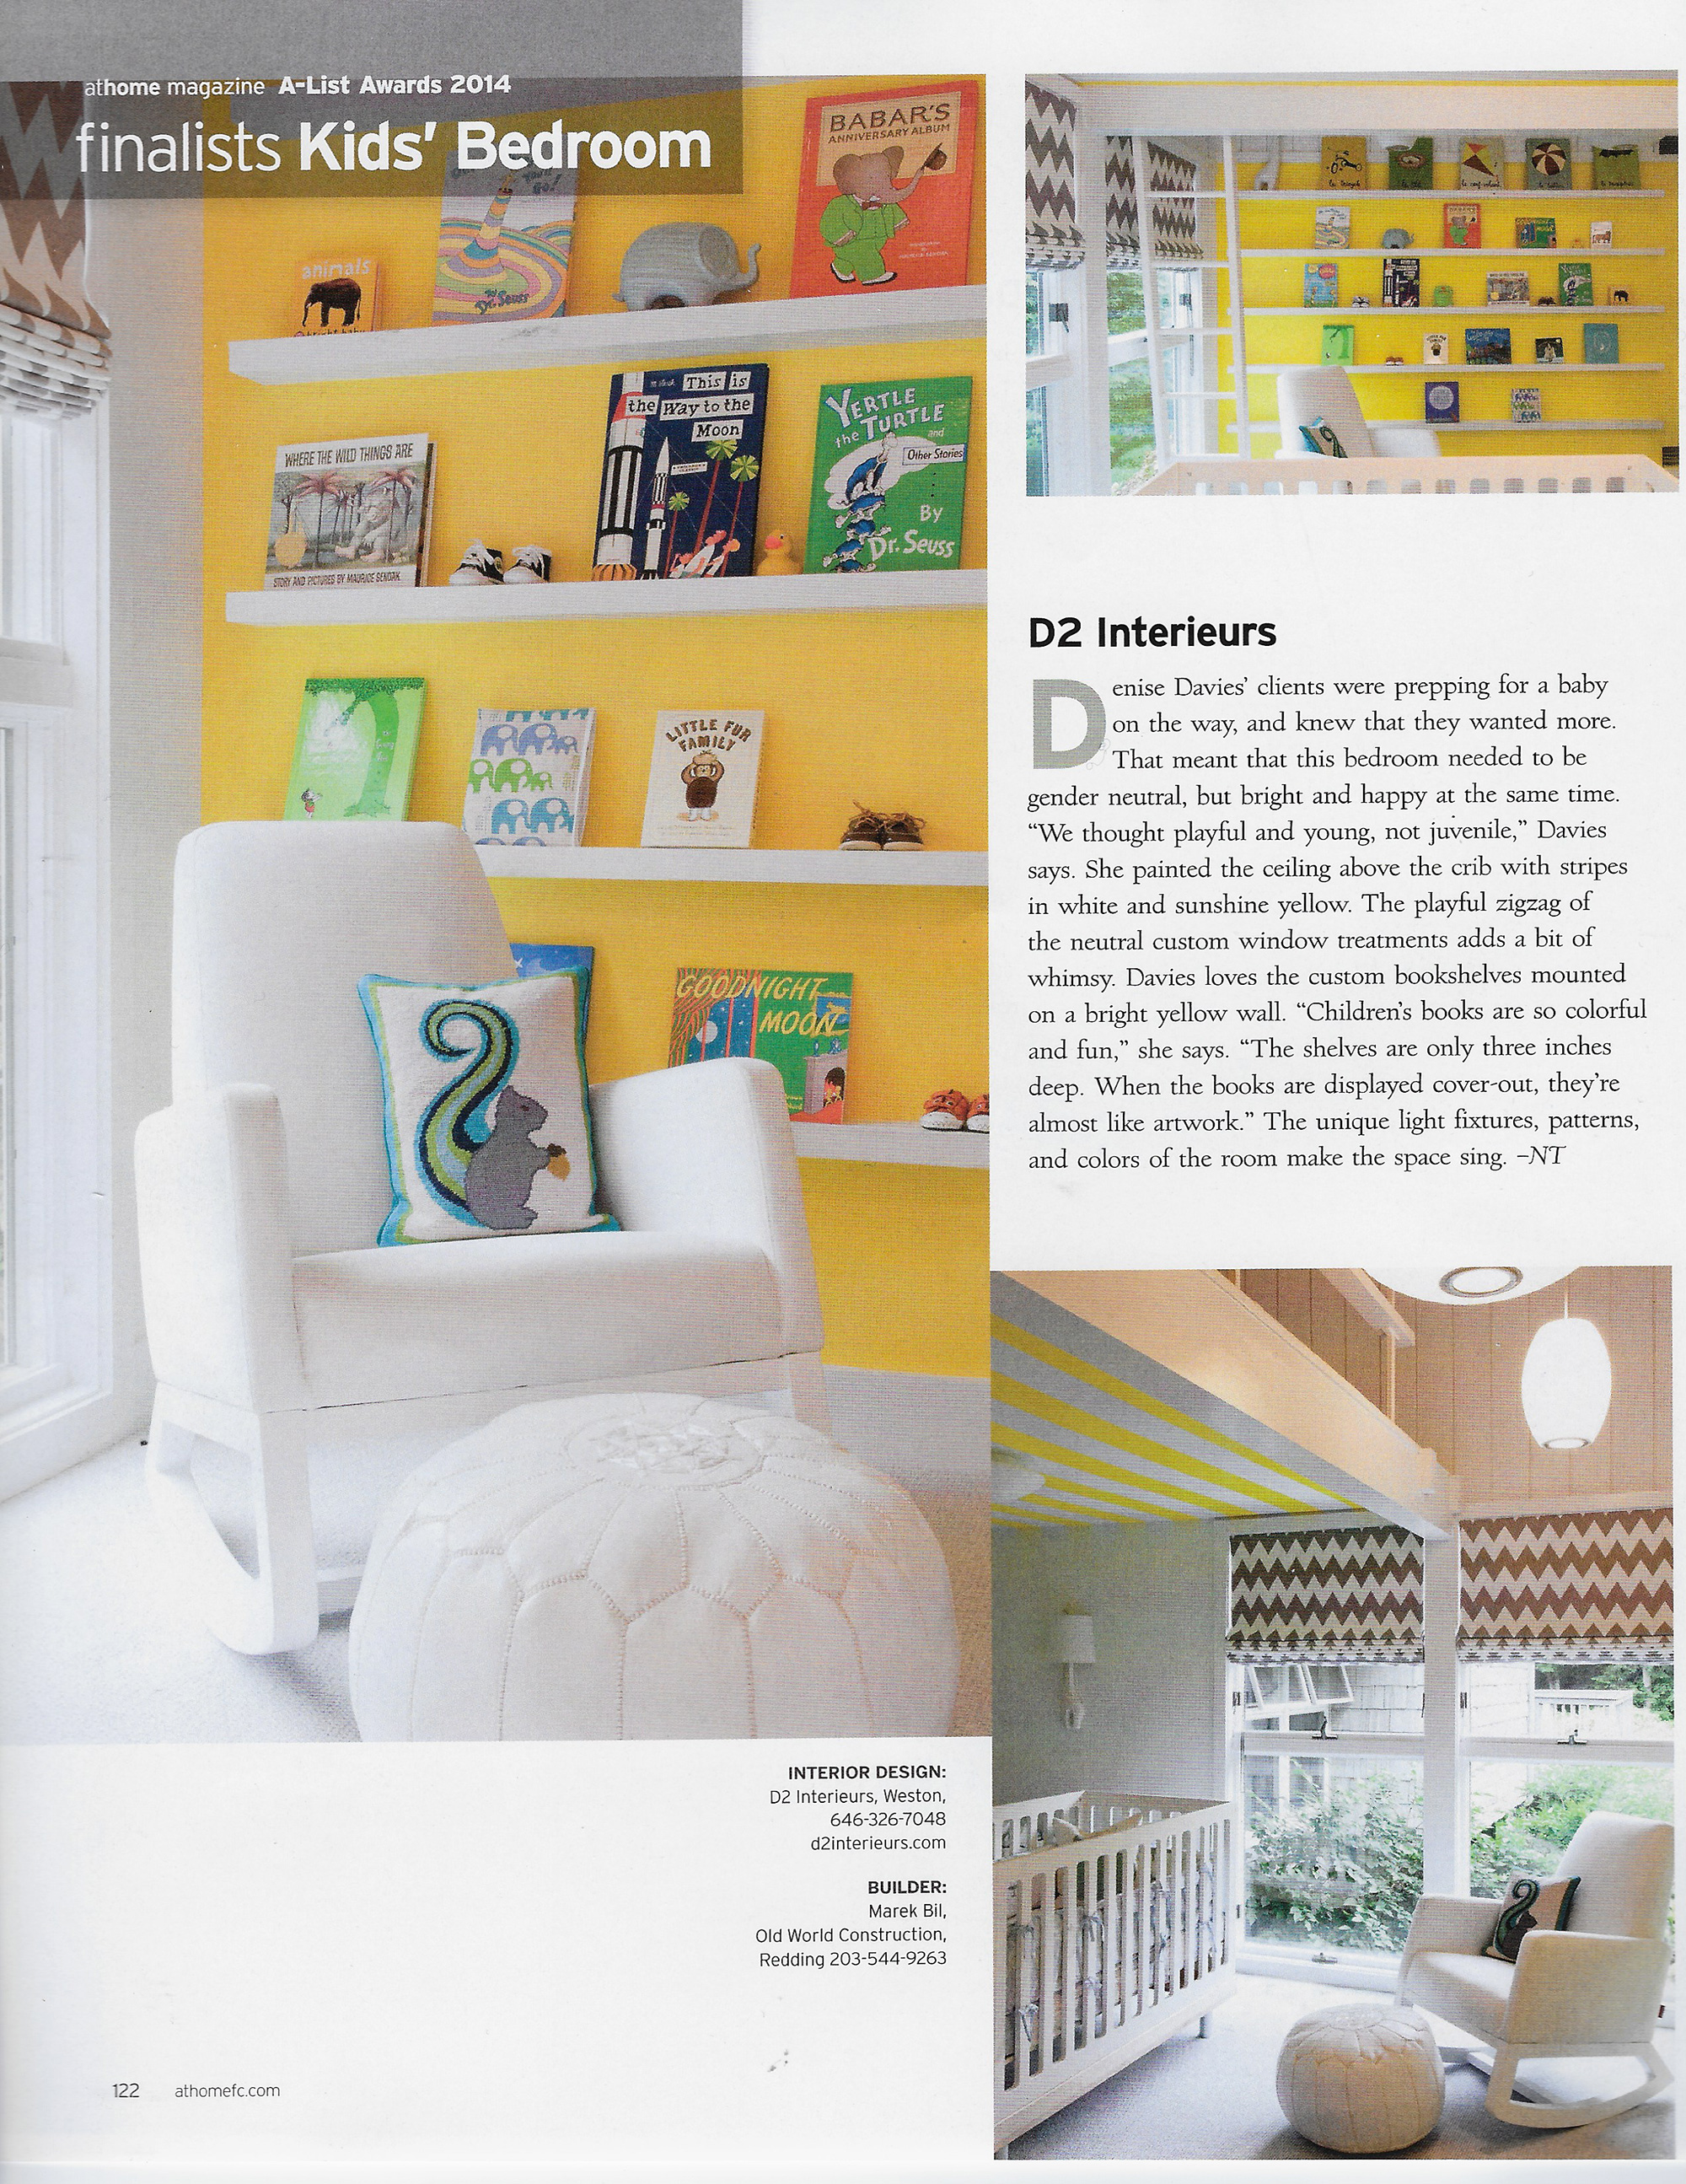 at-home-2014-finalist-a-list-awards-kids-nurdery